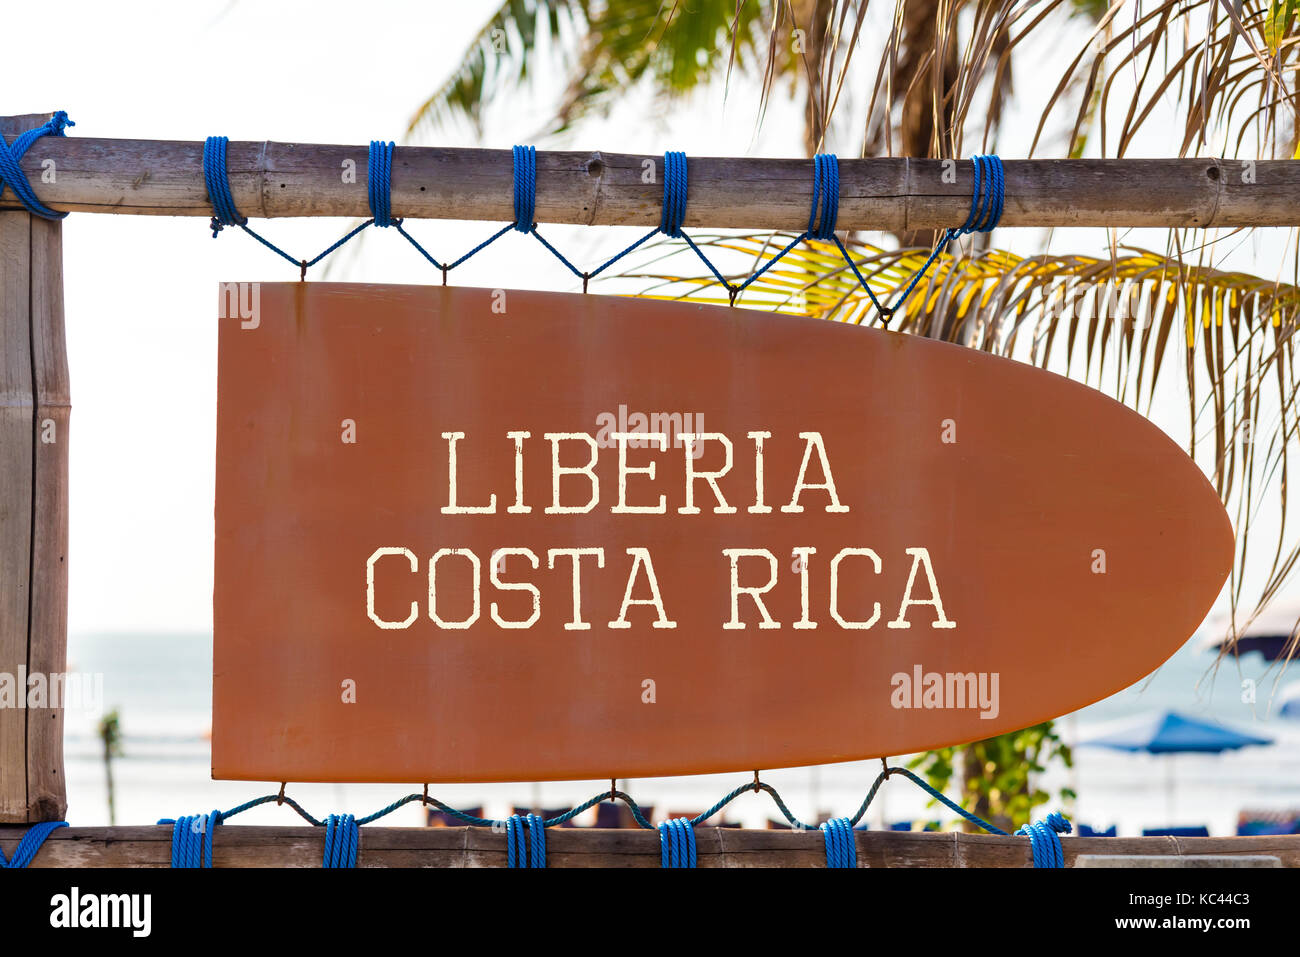 Orange vintage signboard in shape of surfboard with Liberia, Costa Rica text for surf spot and palm tree in background. - Stock Image